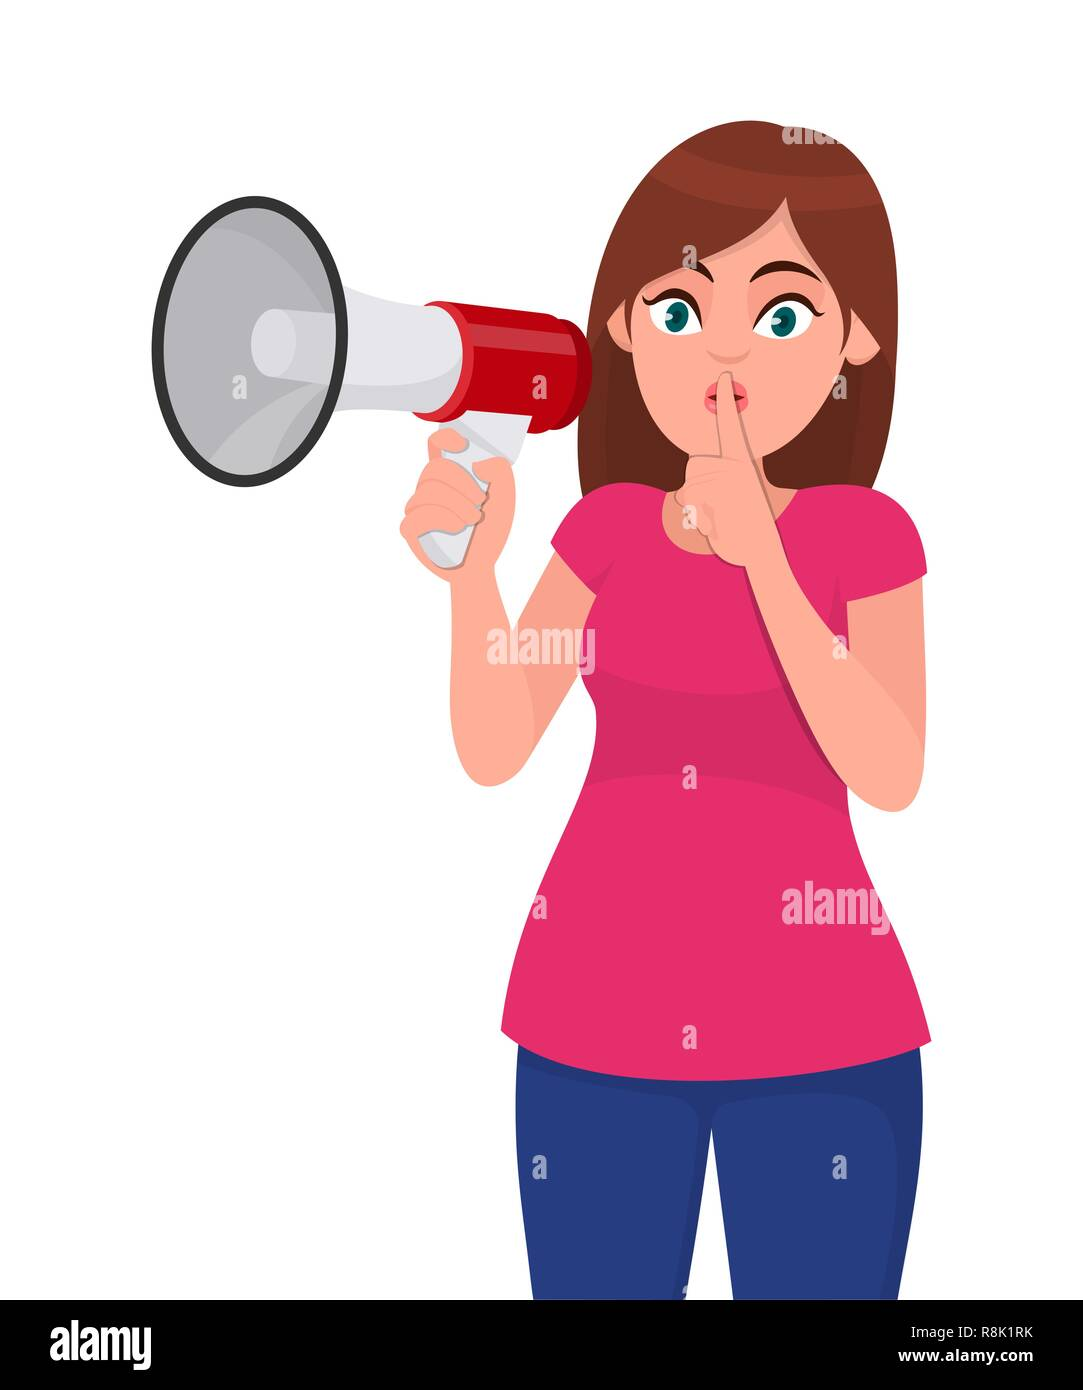 Young woman holding a megaphone/loud speaker, asking for silence, closed her mouth with index finger. Shh! Silence please! Keep quiet! Concept illustr Stock Vector